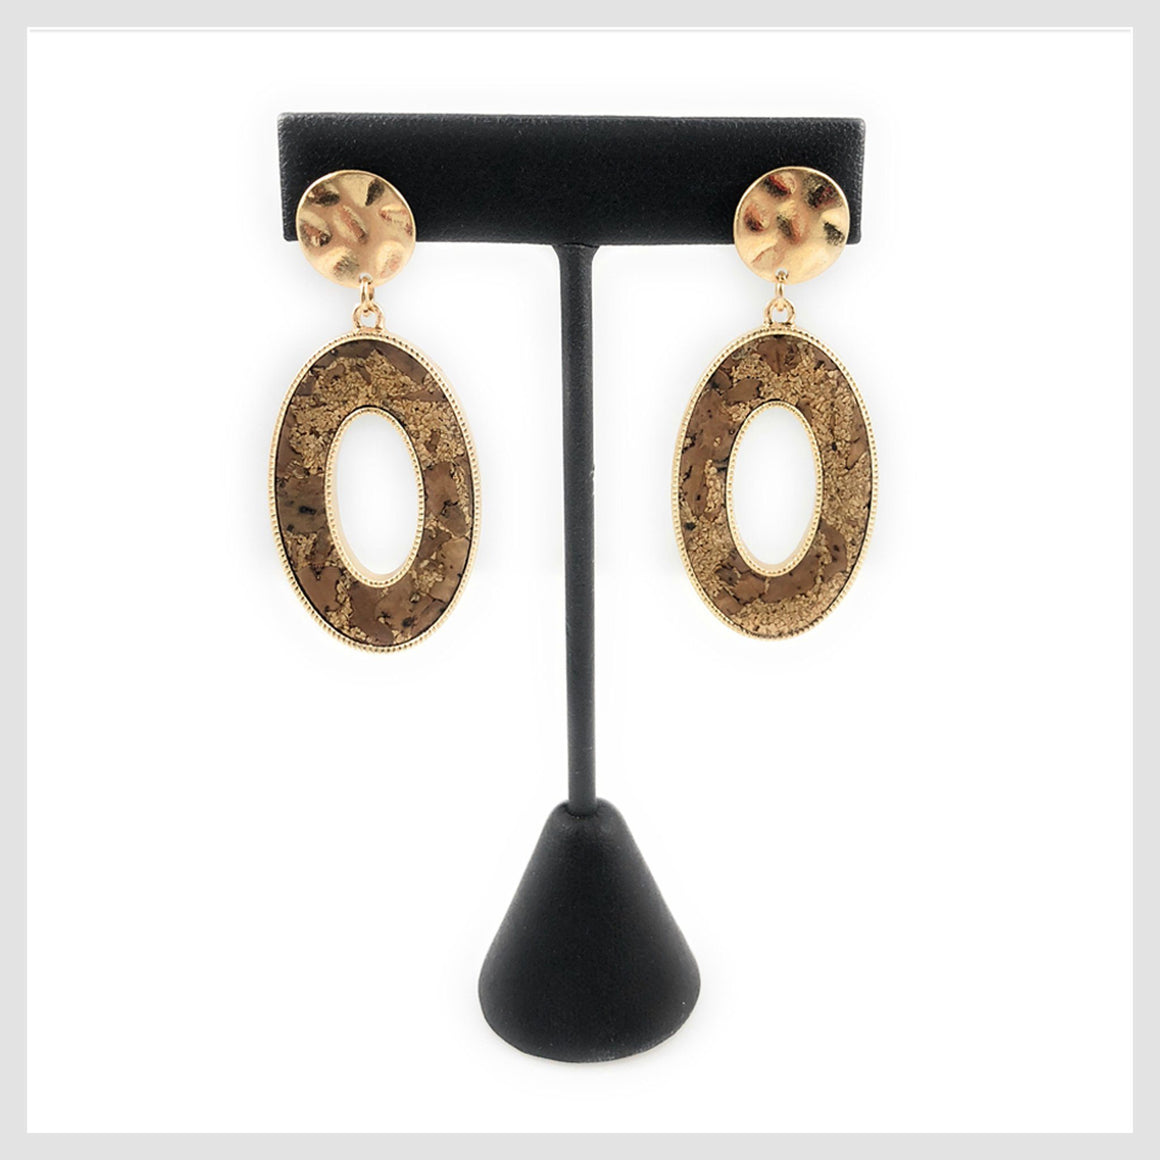 Cork and Brass Oval Drop Stud Earrings - Beads and Dangles